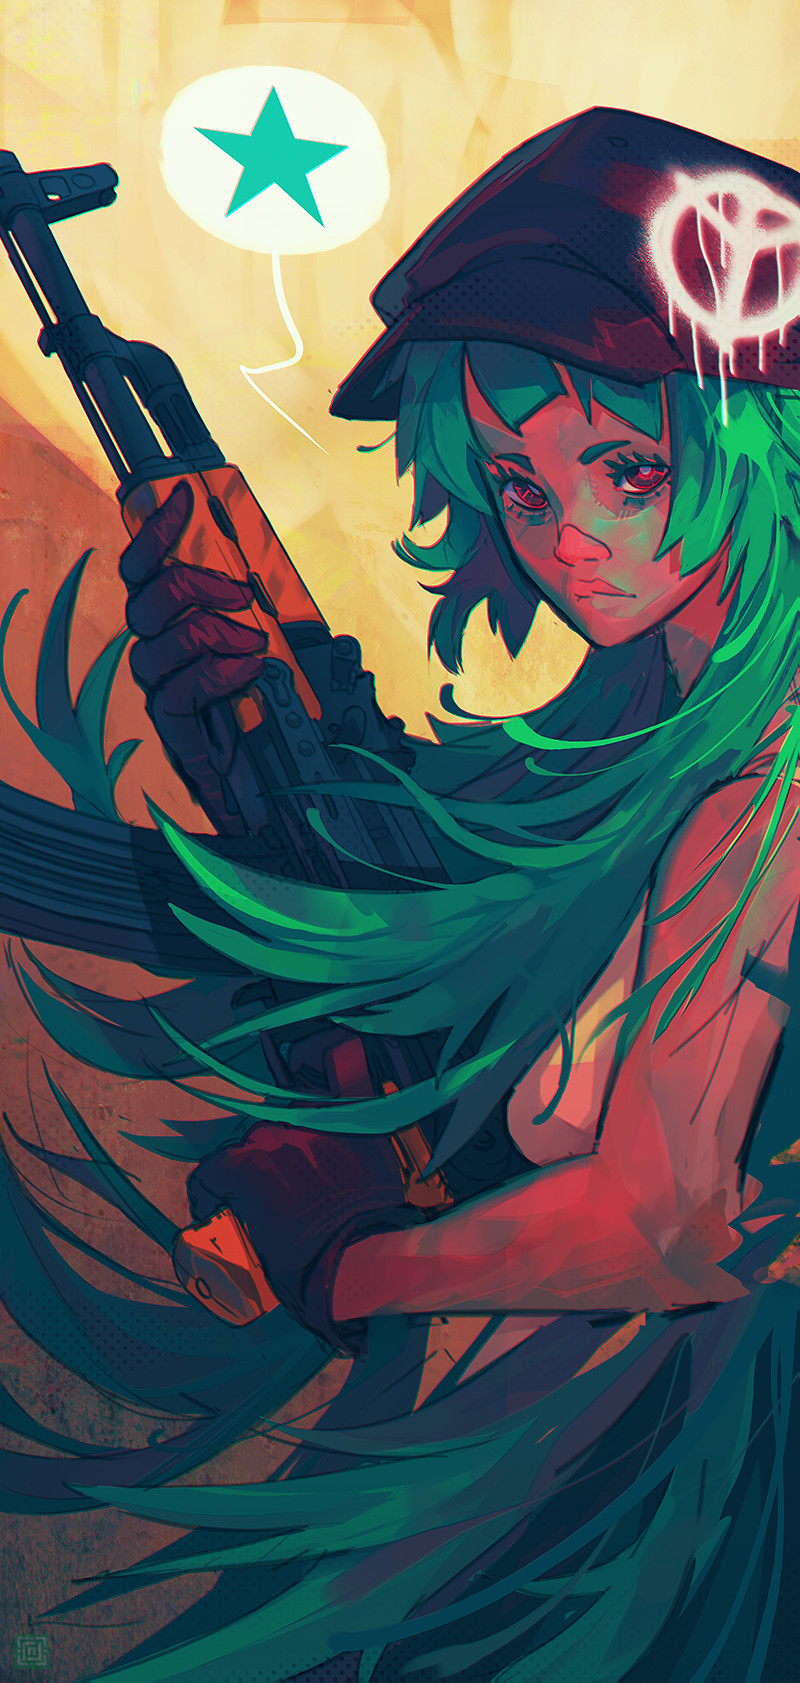 Alexis rives ak 47